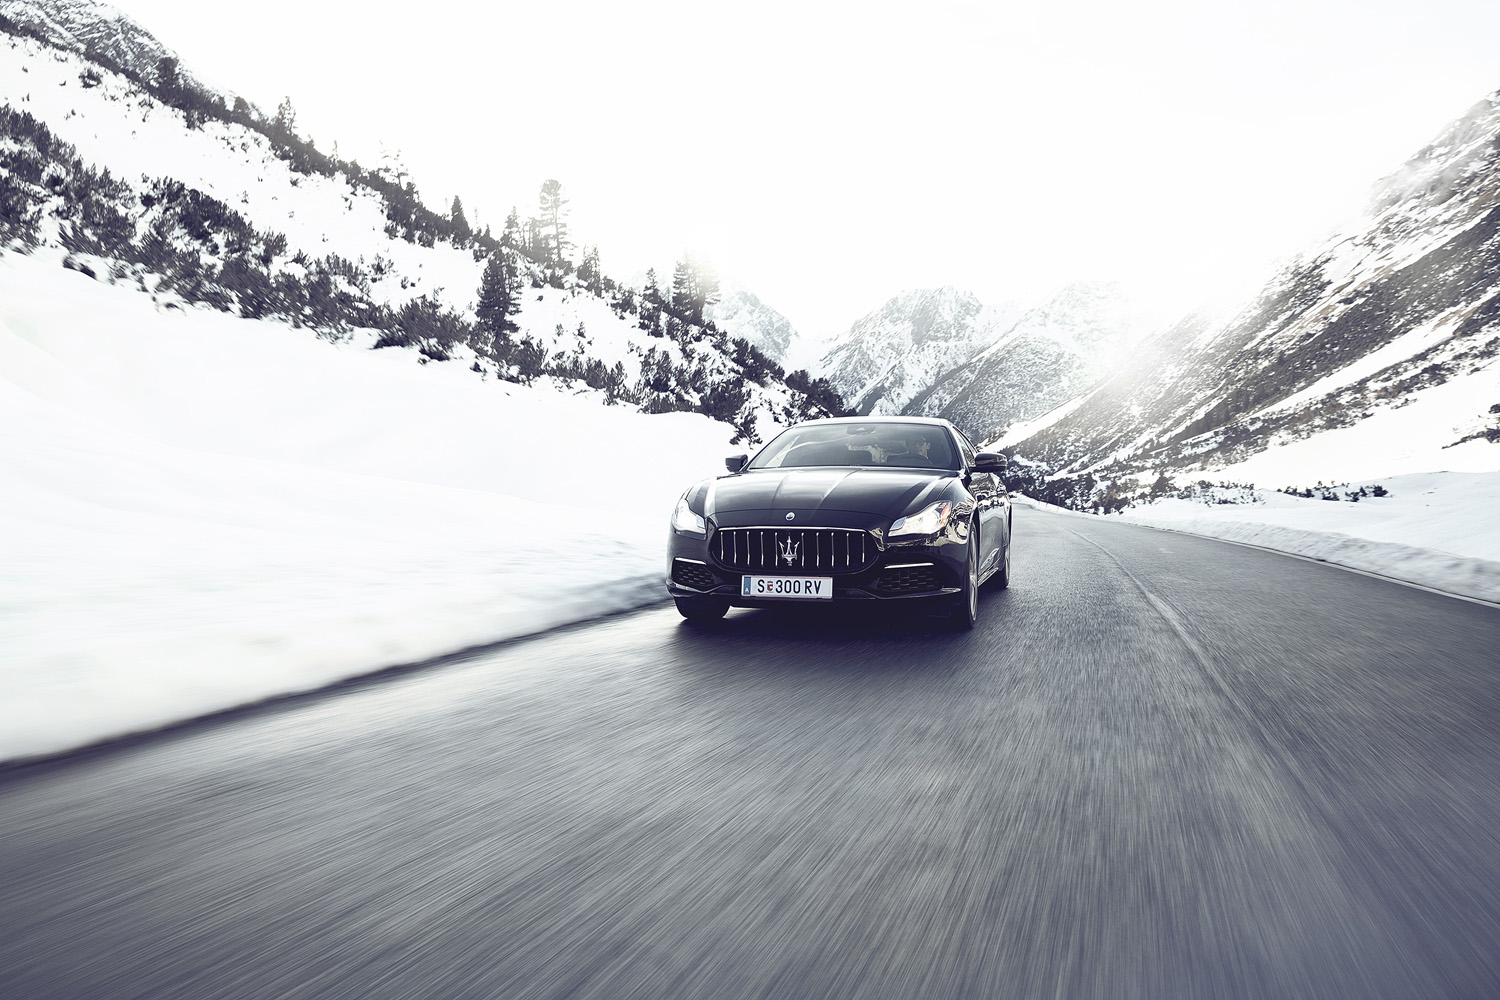 Maserati in the Alps 2 by Marc WITTKOWSKI